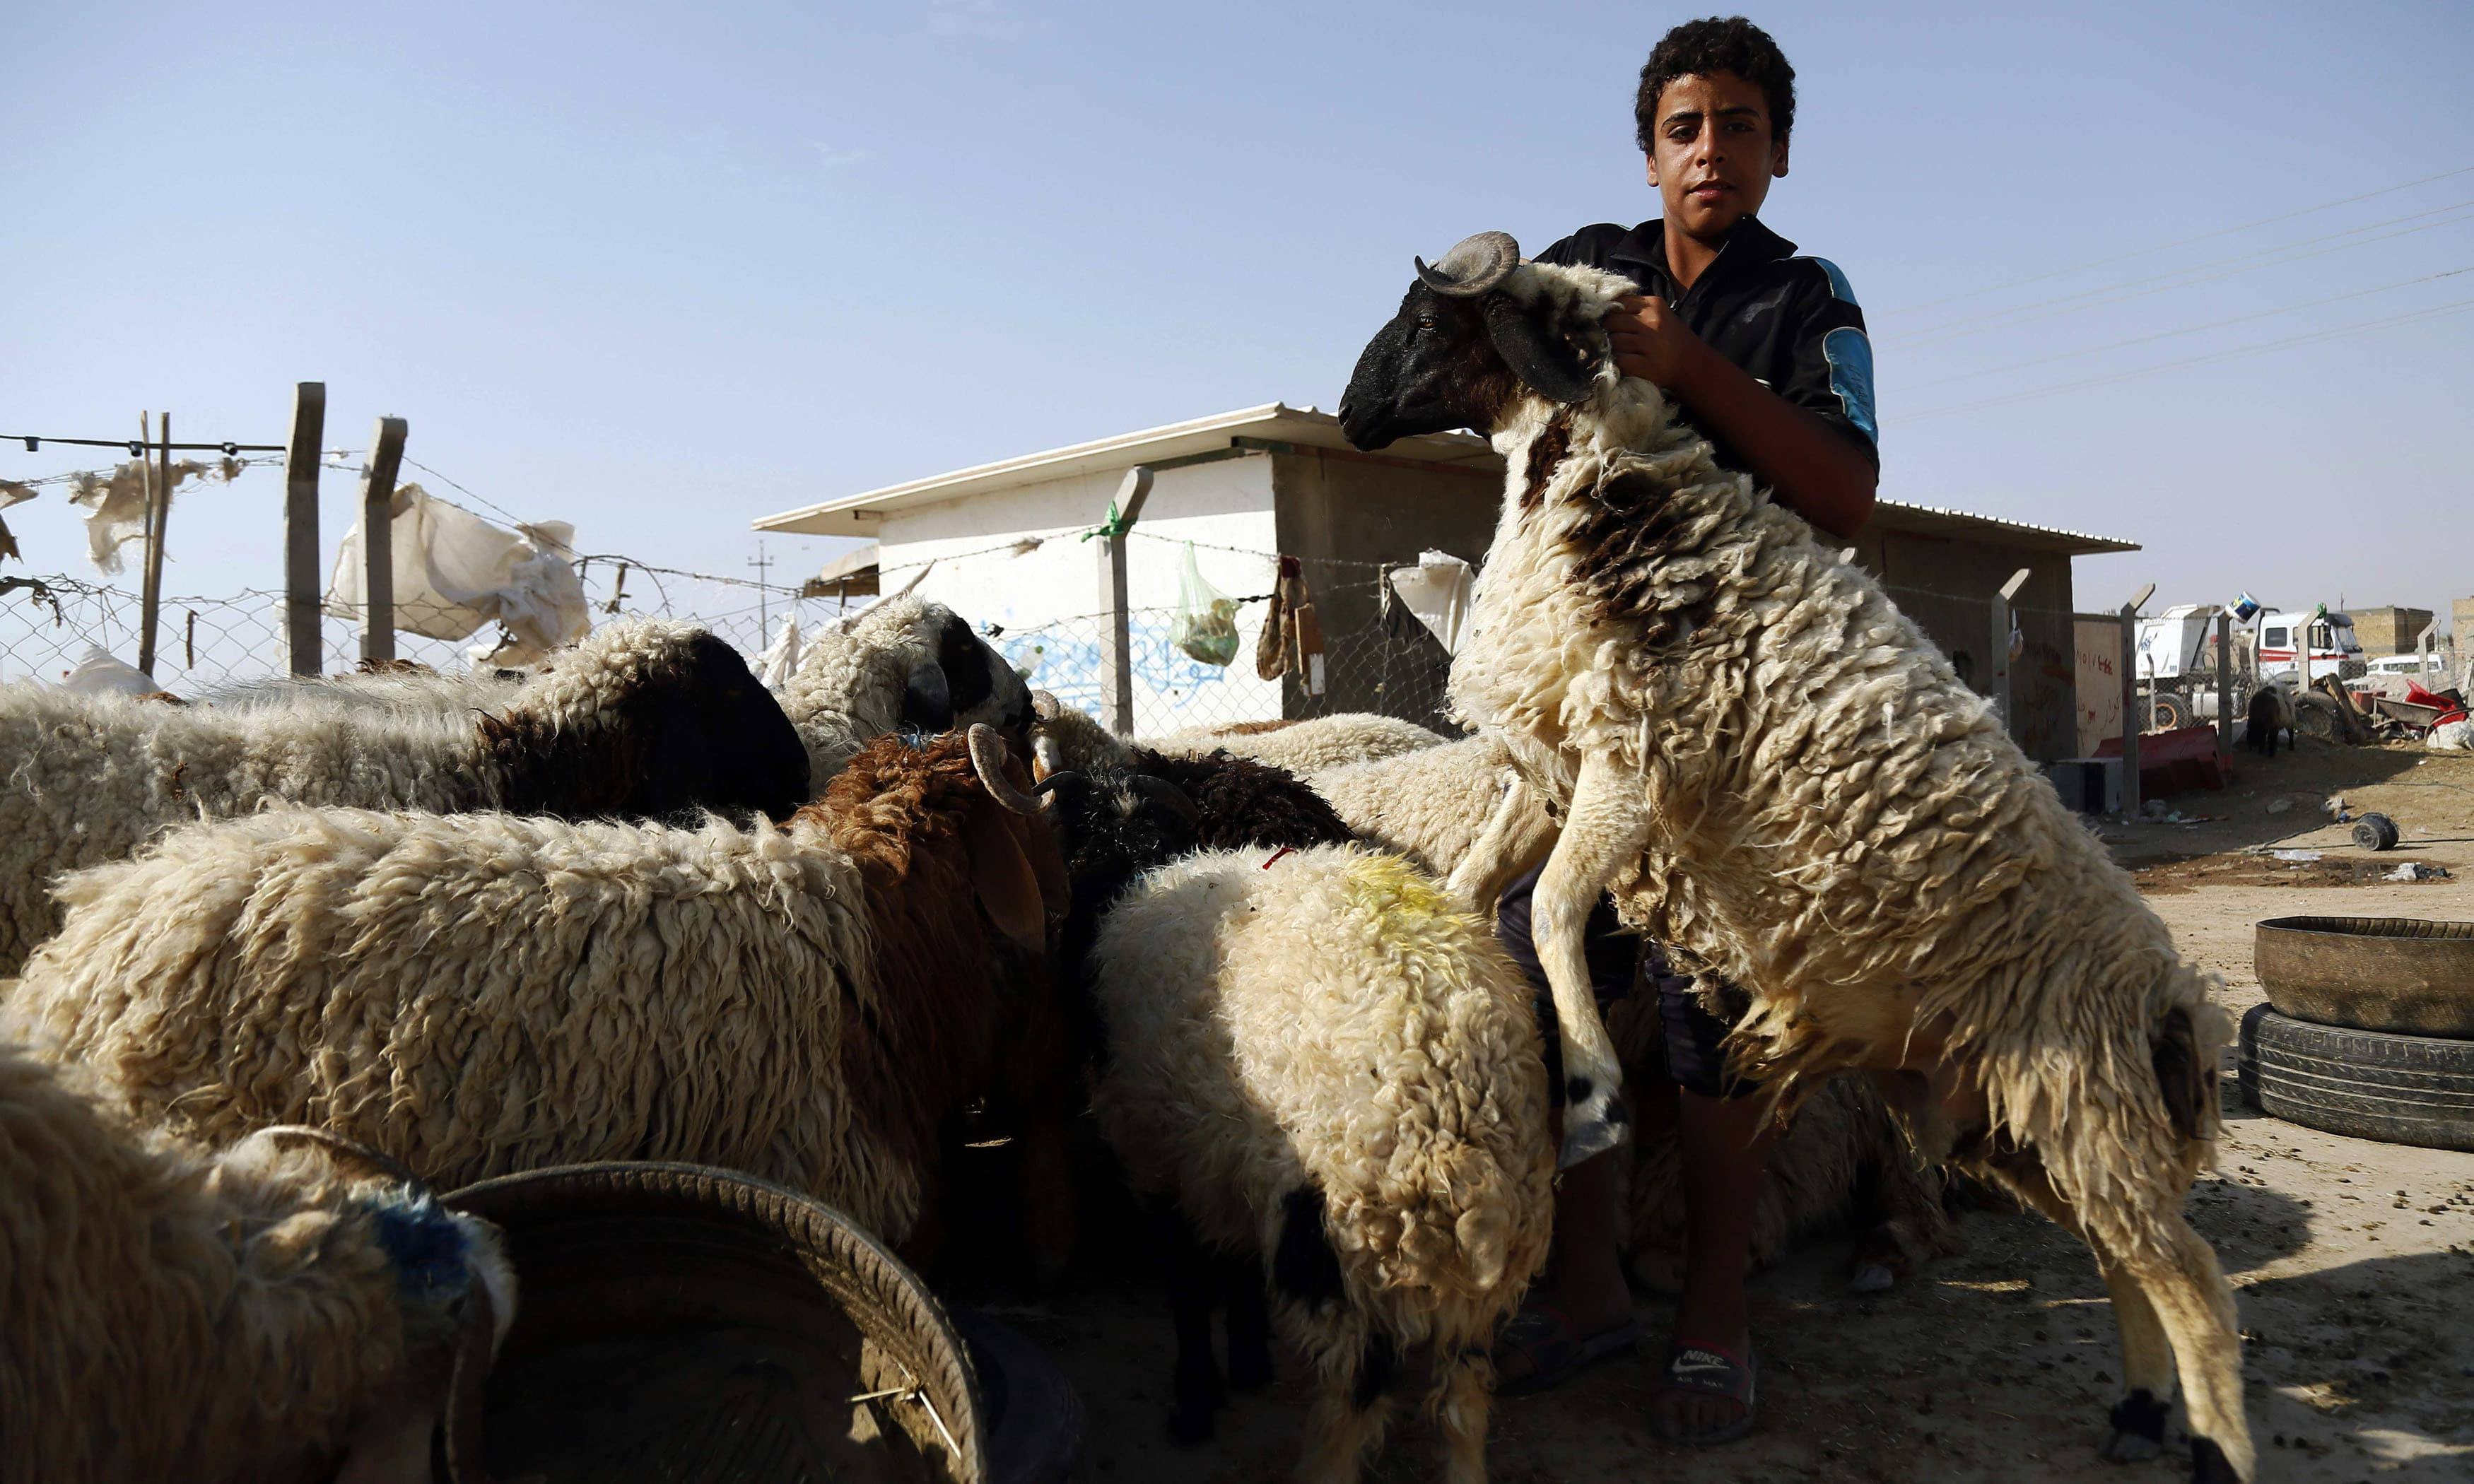 A young man hugs a sheep as they both await buyers on the final day of Eid celebrations in Iraq. — AFP